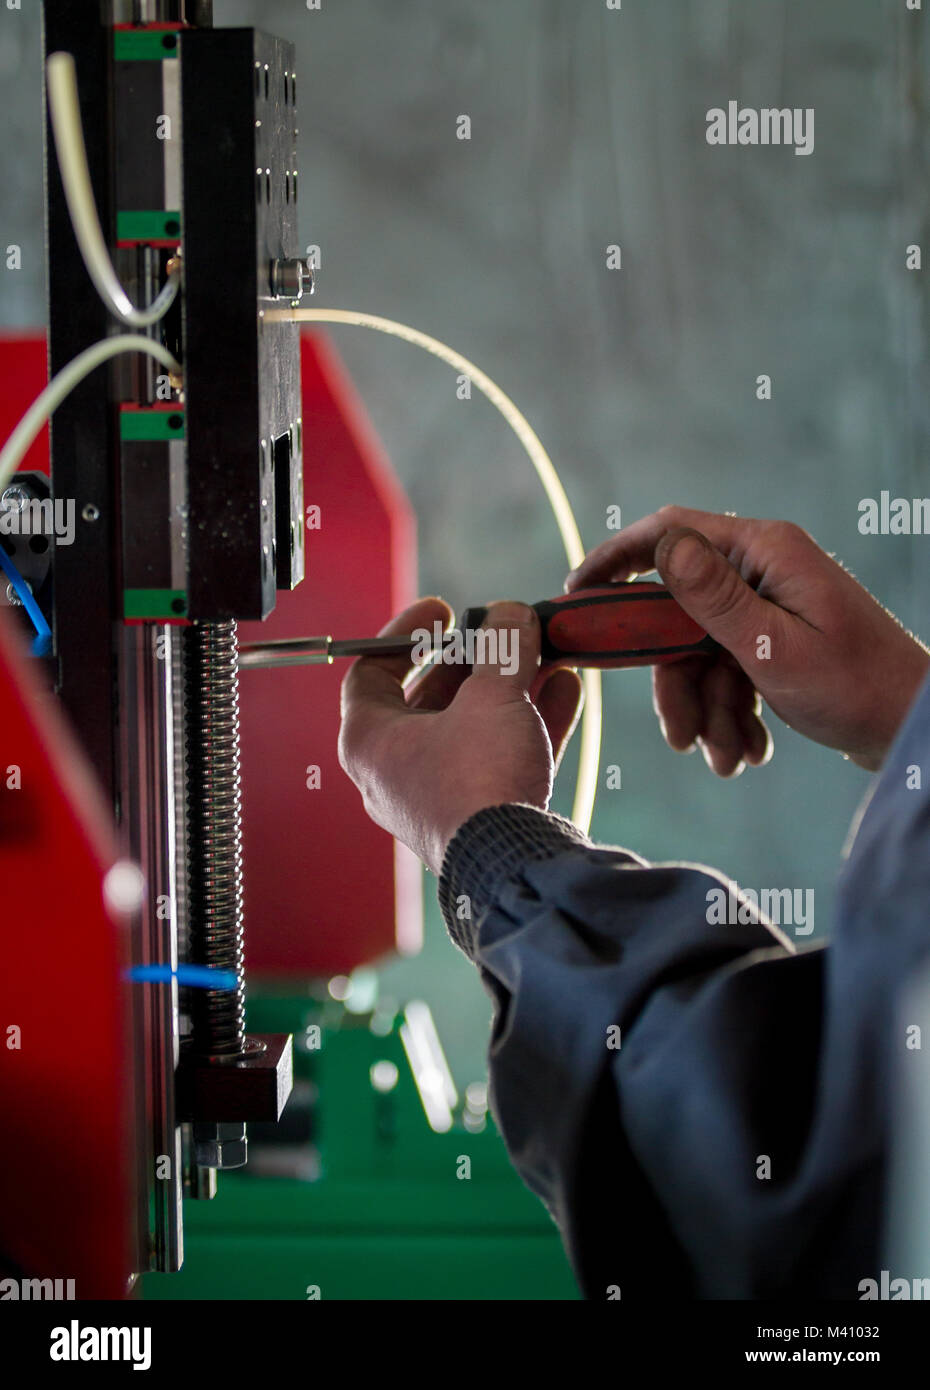 Hands of worker with screwdriver - repairs of machinery equipment - Stock Image